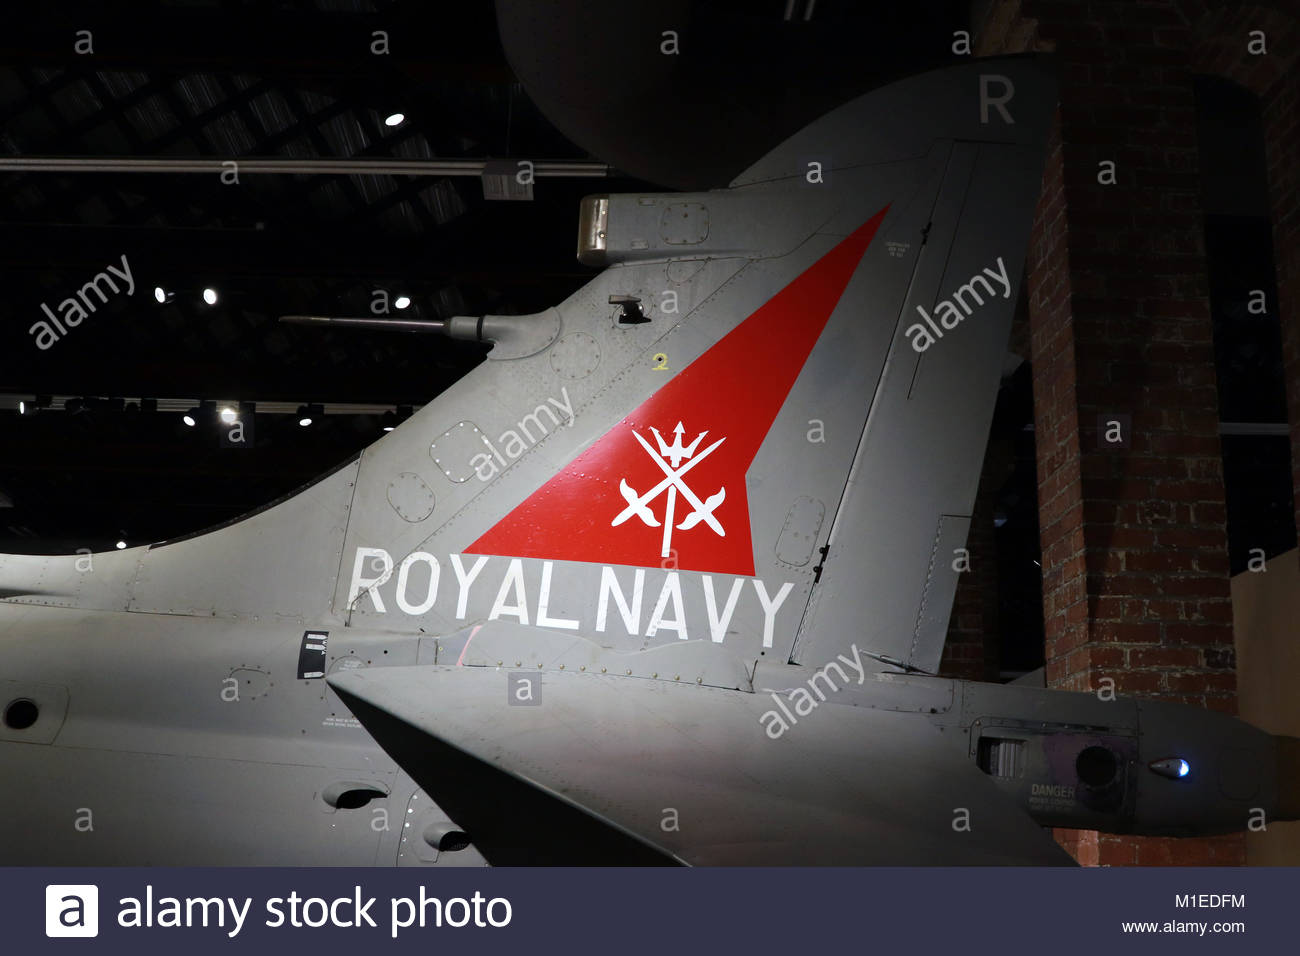 BRISTOL, UNITED KINGDOM: Aircraft Tailplane with Royal Navy Sign - Stock Image